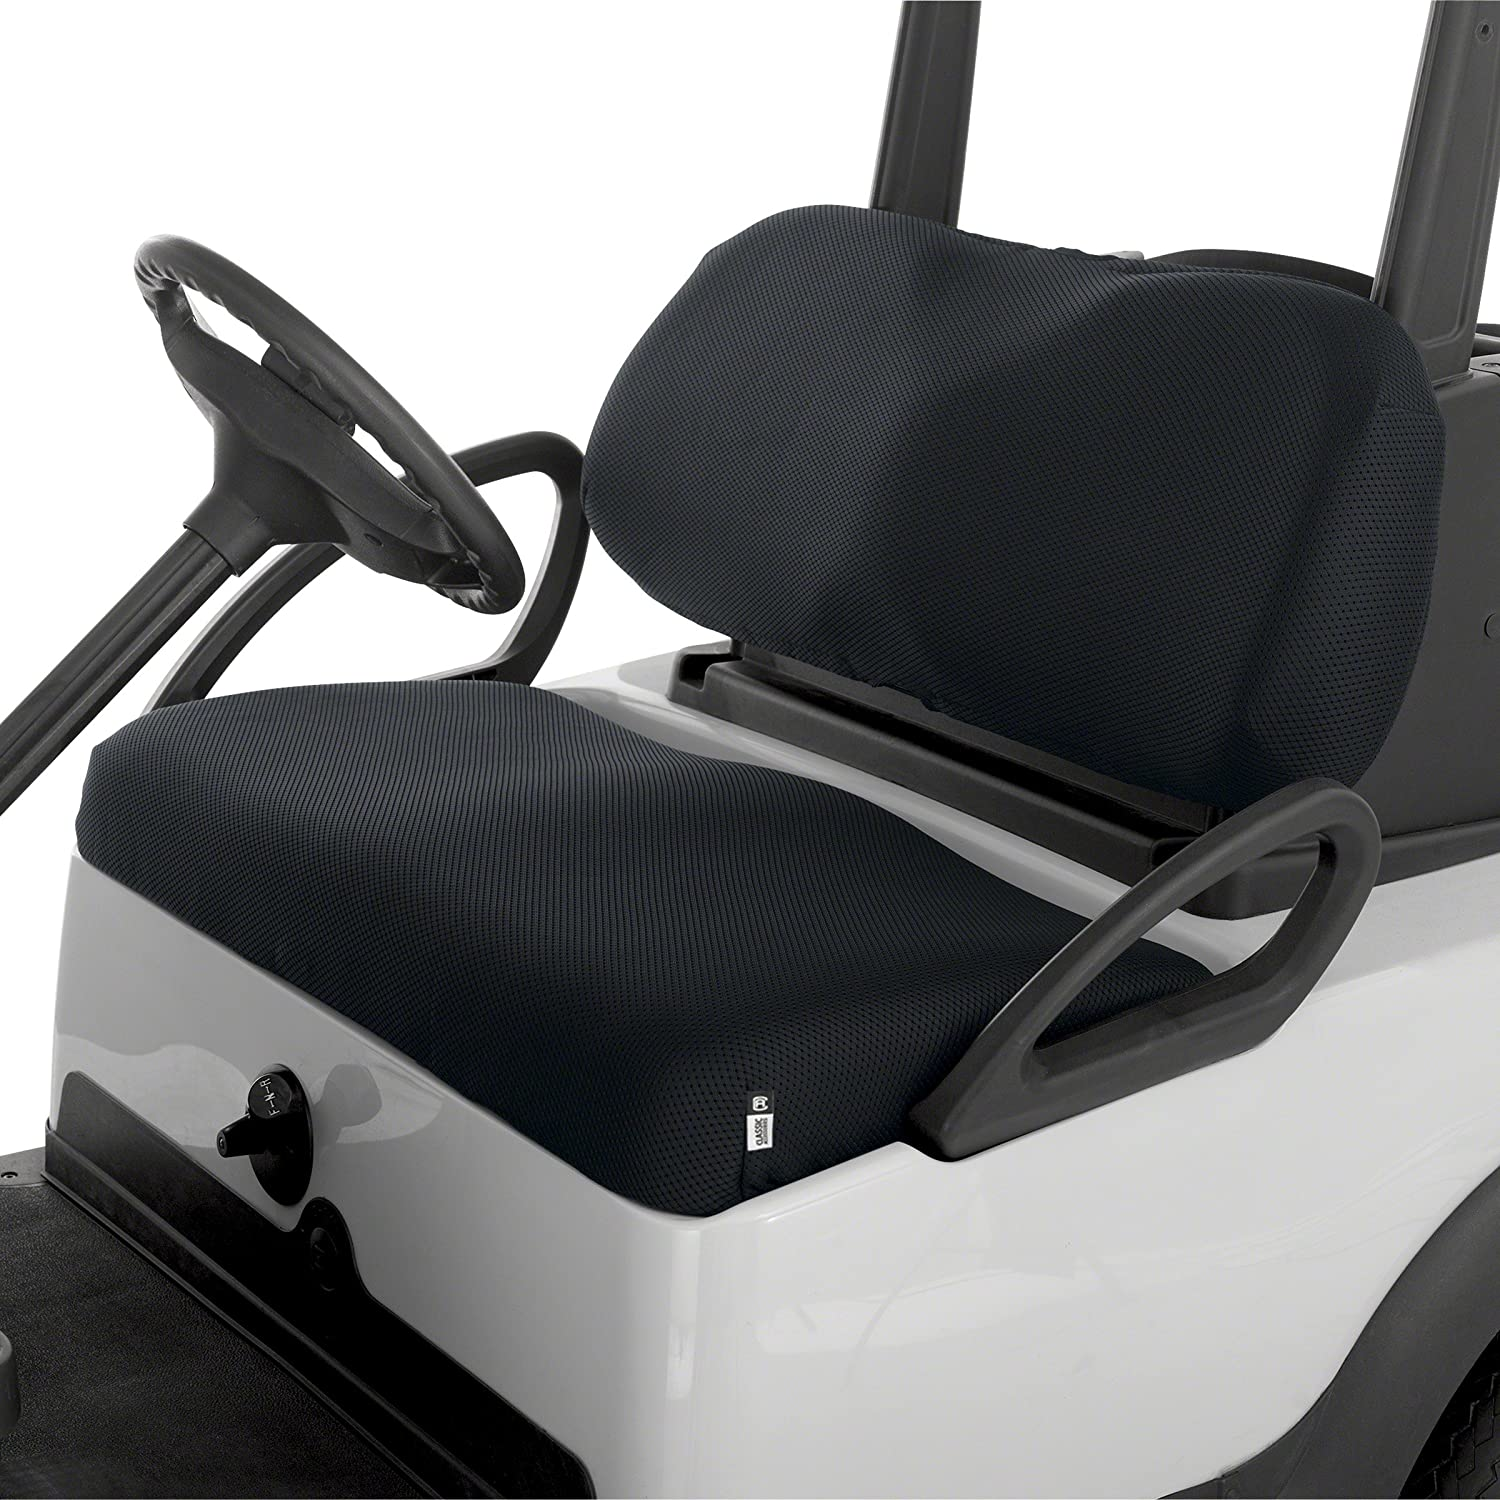 Custom Golf Cart Seat Covers Html on ezgo seat covers, personalized girly car seat covers, custom bucket seats for cars, custom chevy truck seat covers, custom boat seat covers, custom car seat covers, custom pickup truck seat covers, custom bmw seat covers, custom honda seat covers, custom atv seat covers, custom 4 wheeler seat covers, ez go txt seat covers, custom ford seat covers, custom bike seat covers, custom mini cooper seat covers, custom snowmobile seat covers, yamaha golf car seat covers, custom auto seat covers, club car seat covers, custom gmc seat covers,